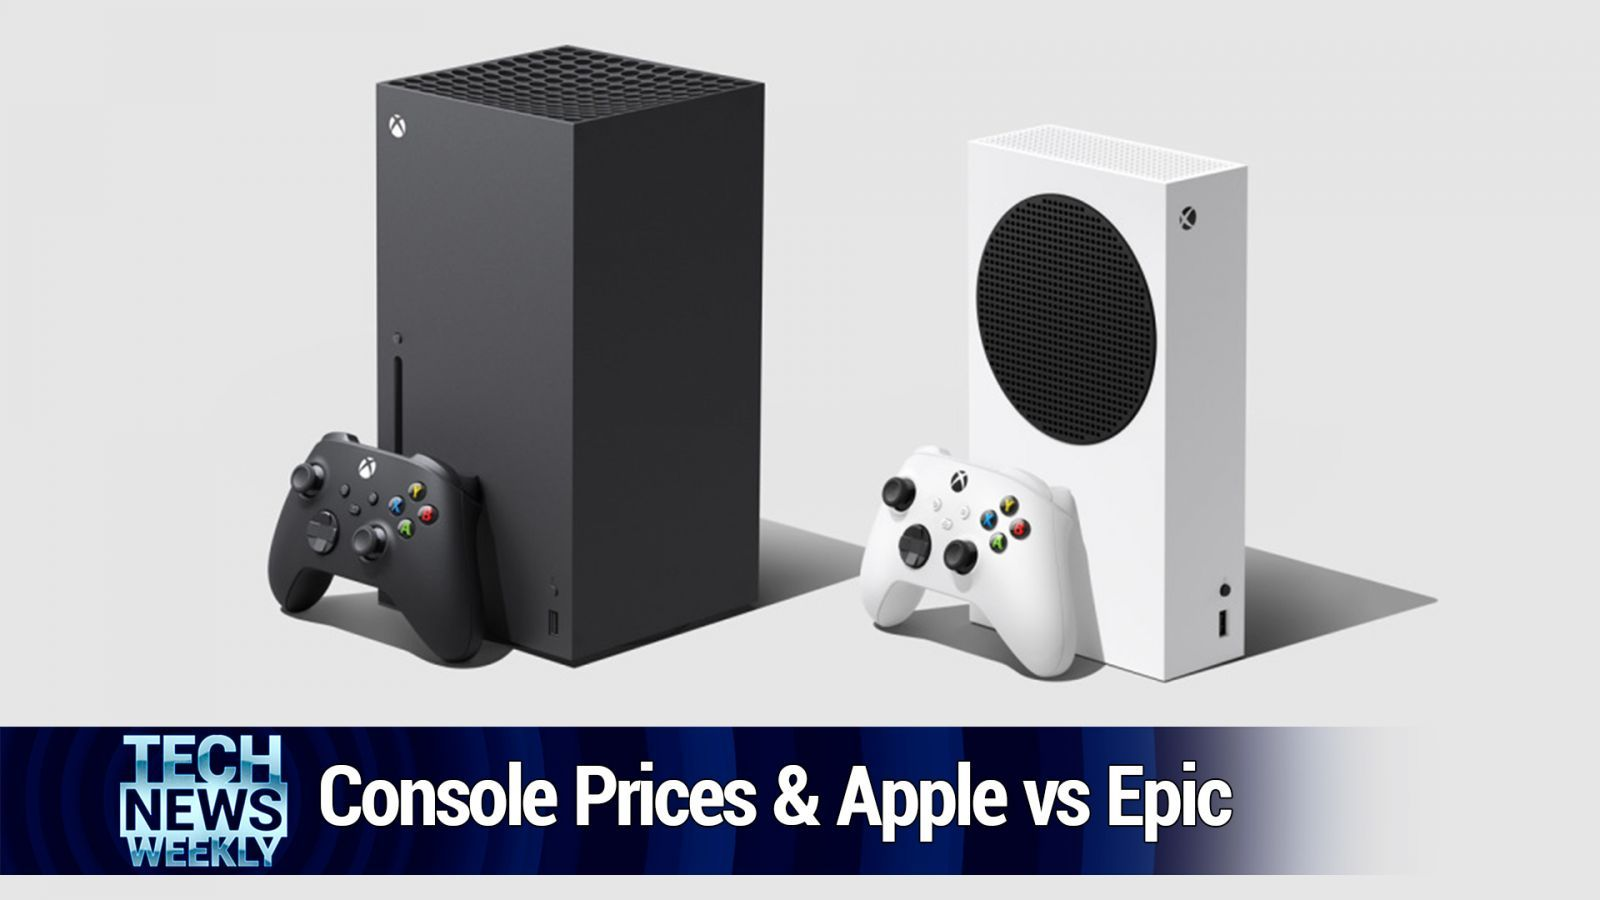 TNW 150: Xbox Series S and Series X - Console Prices, Apple vs. Epic Games Continues, The 5G Lie